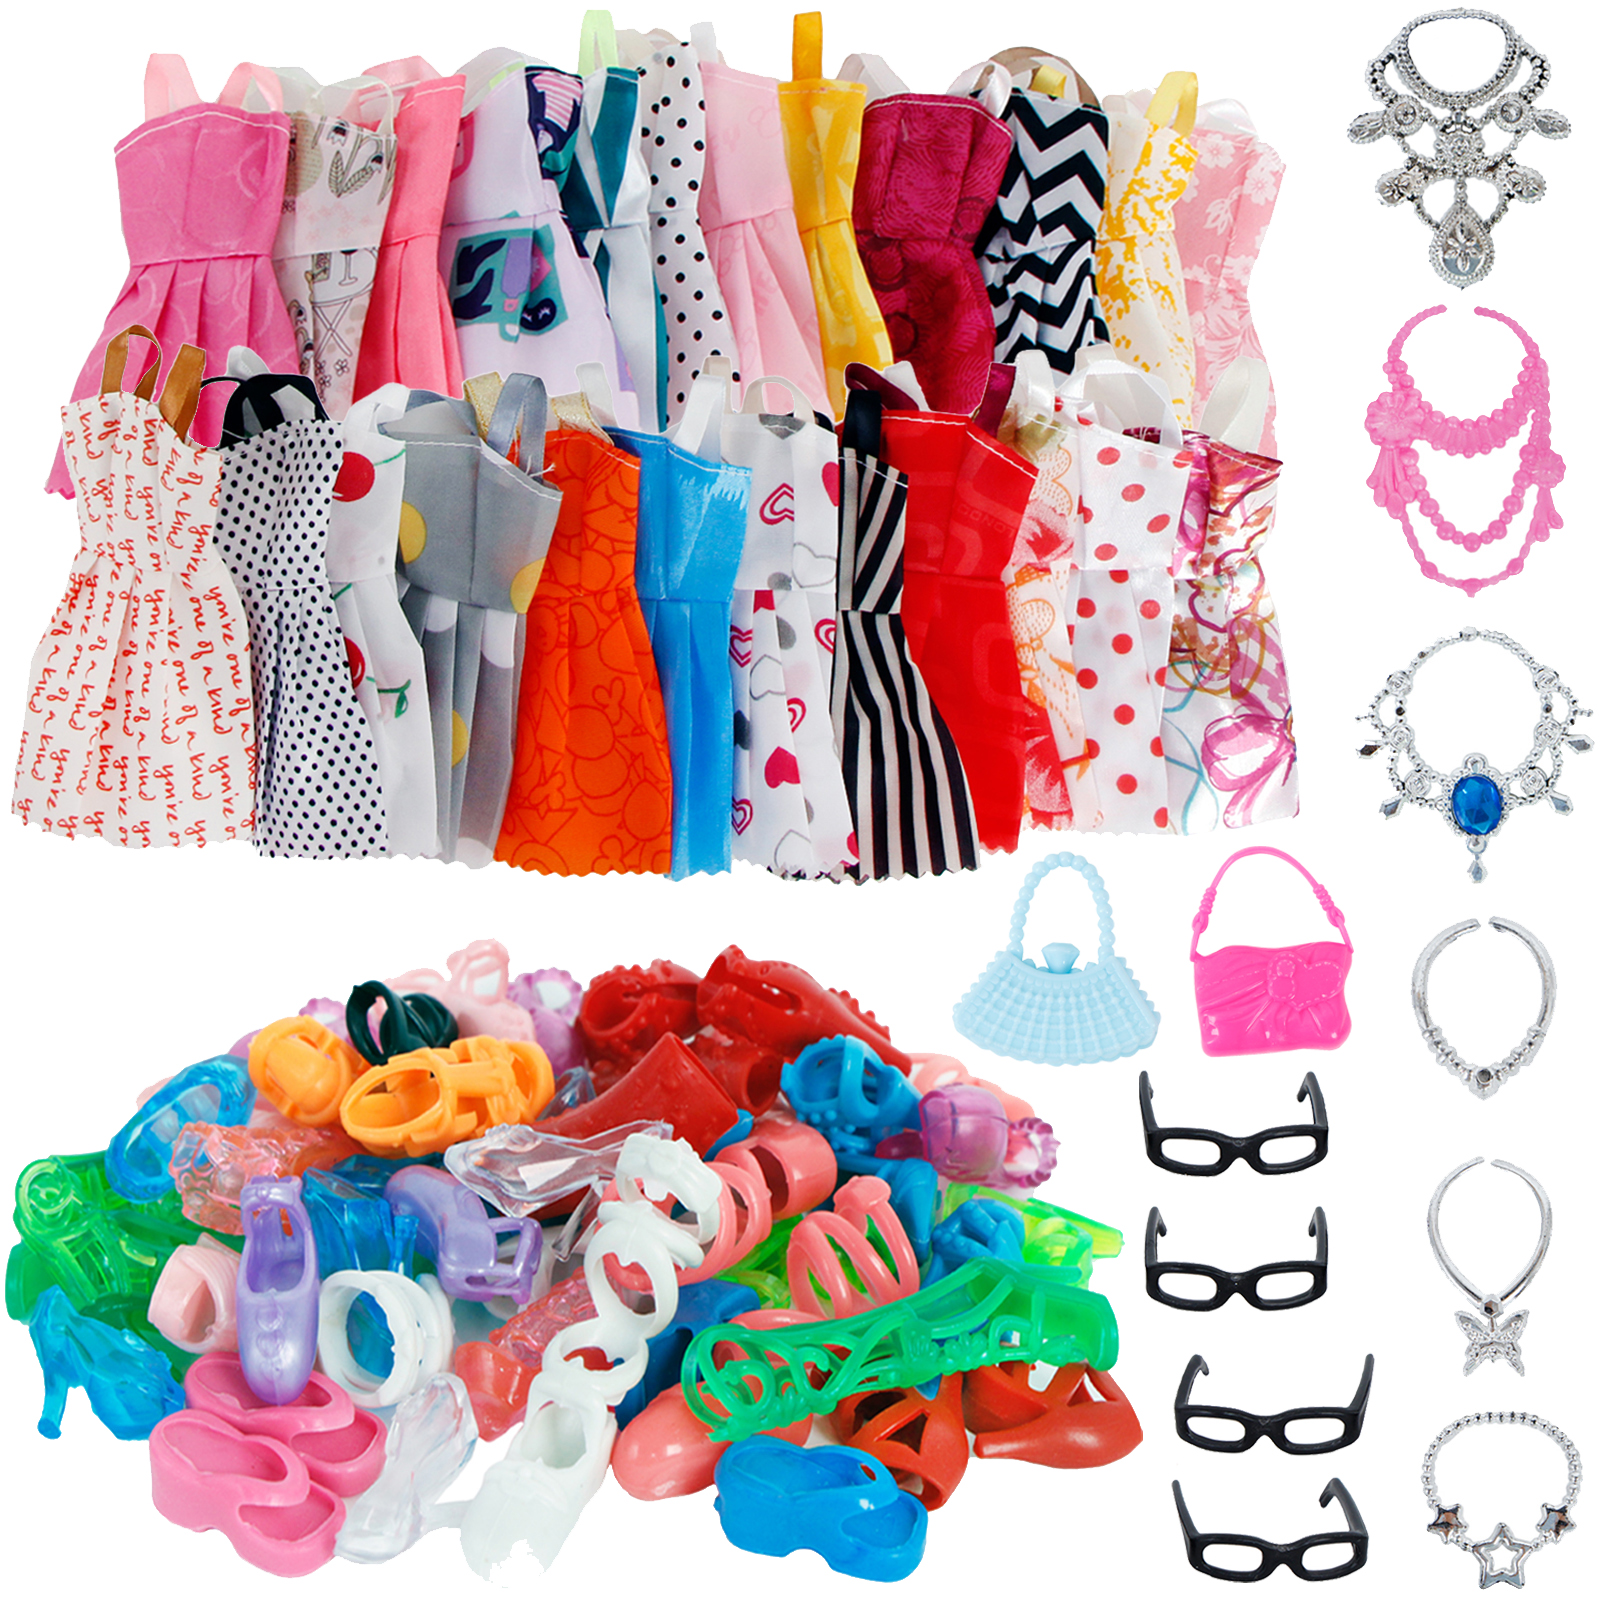 32 Item/Set Doll Accessories=<font><b>10</b></font> Mix Fashion Cute Dress+ 4 Glasses+ 6 Necklaces+2 Handbag+ <font><b>10</b></font> Shoes Dress Clothes For Barbie Doll image